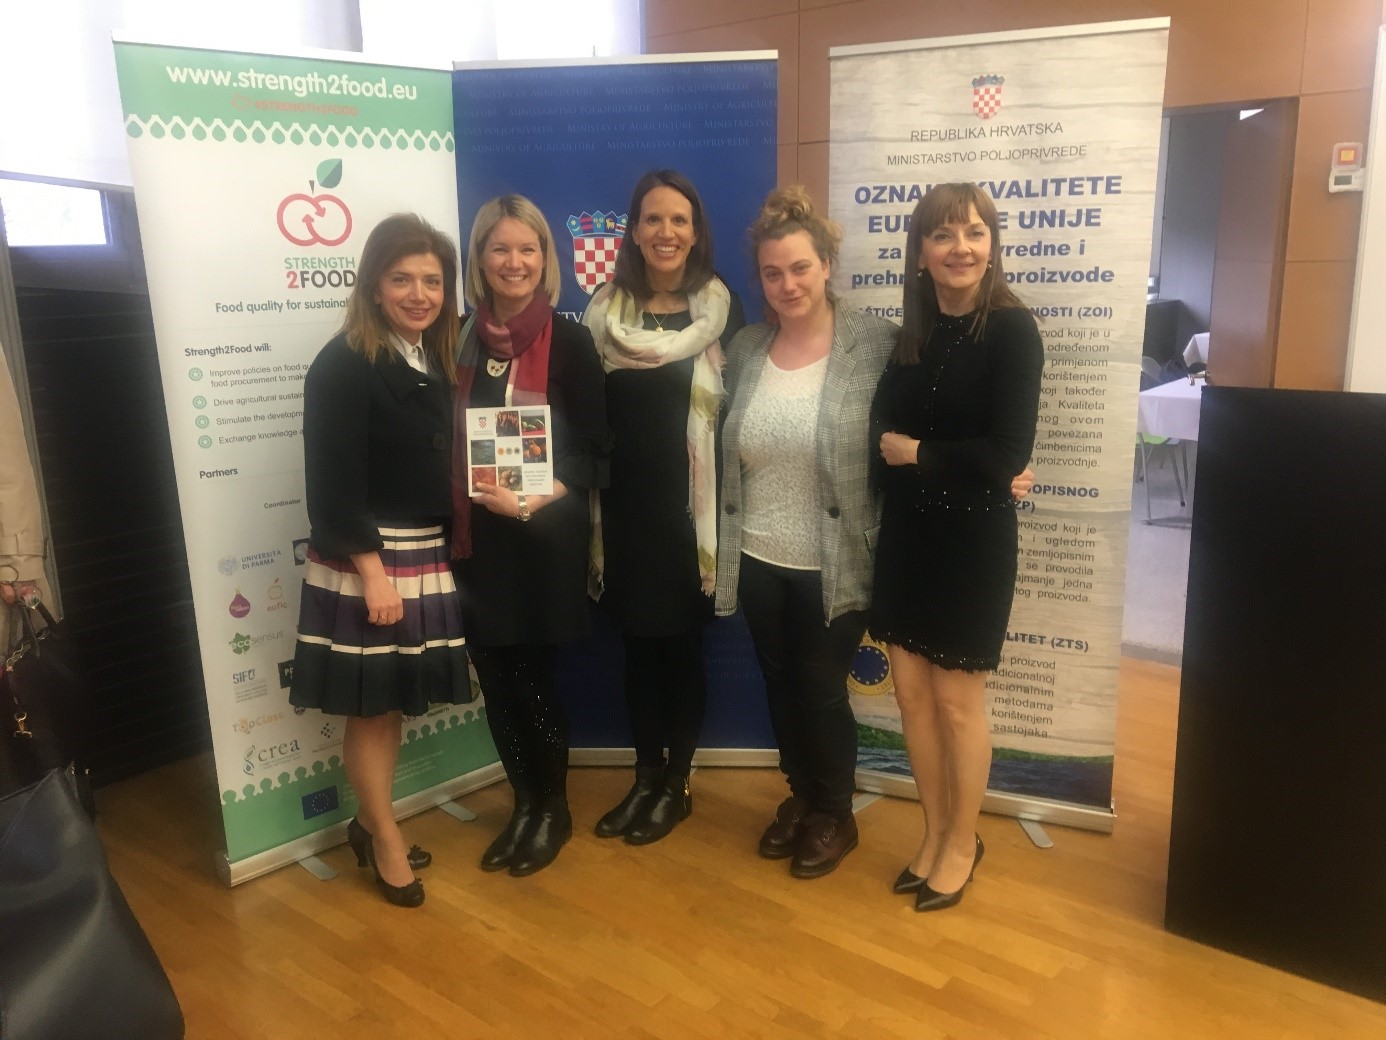 Strength2Food Researchers Co-operate with the Croatian Ministry of Agriculture to Mark the day of Croatian Protected Products